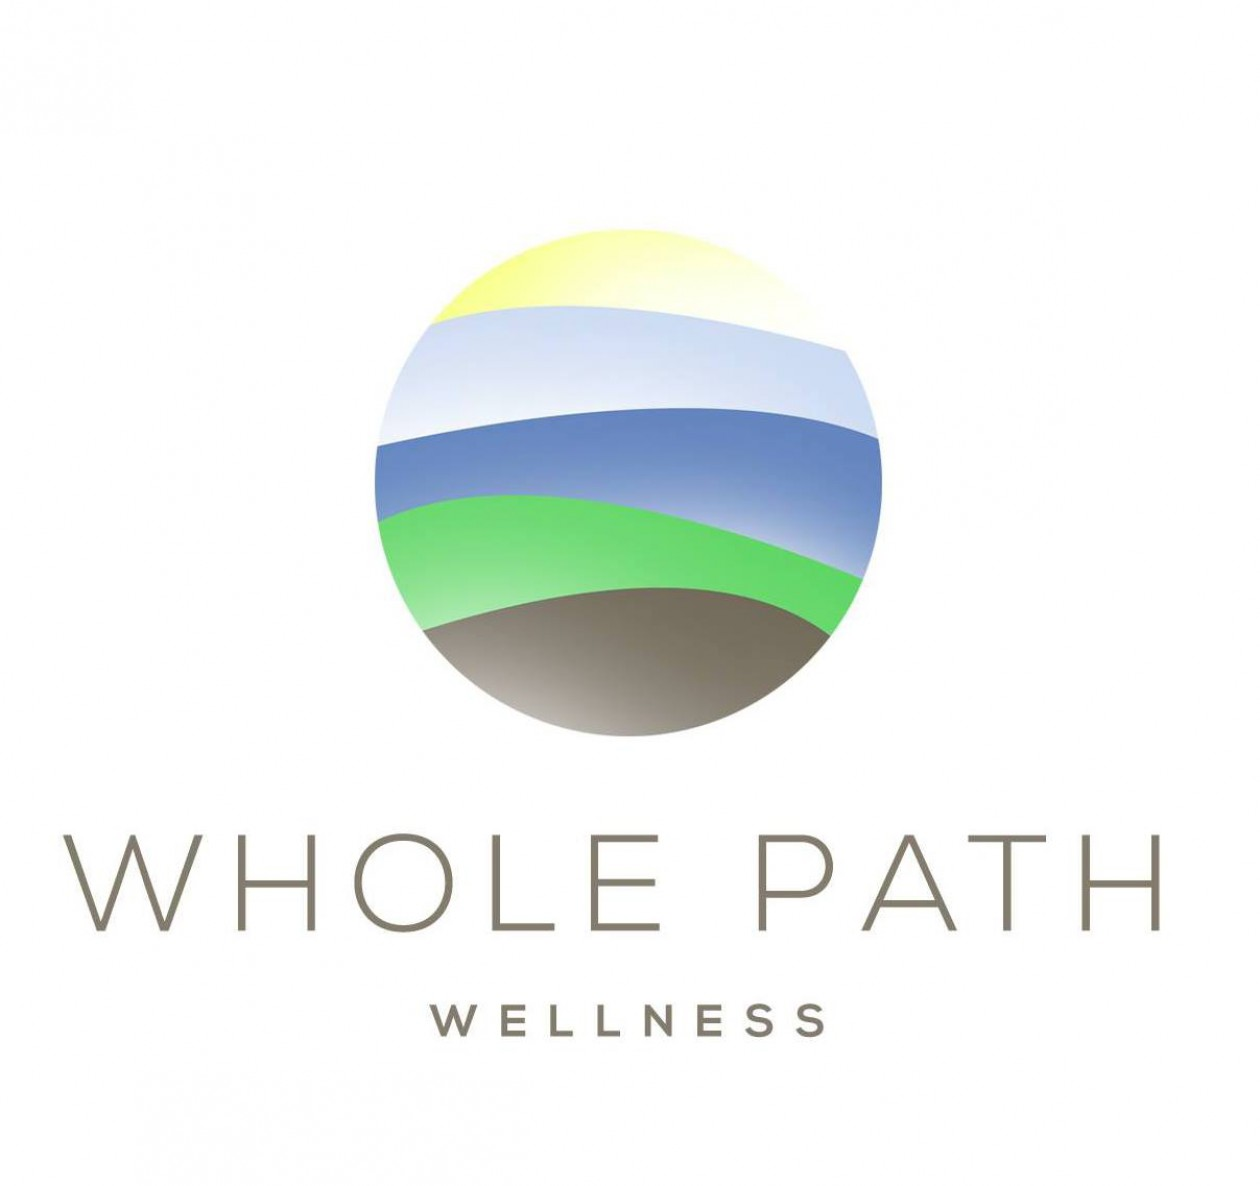 wholepathwellness